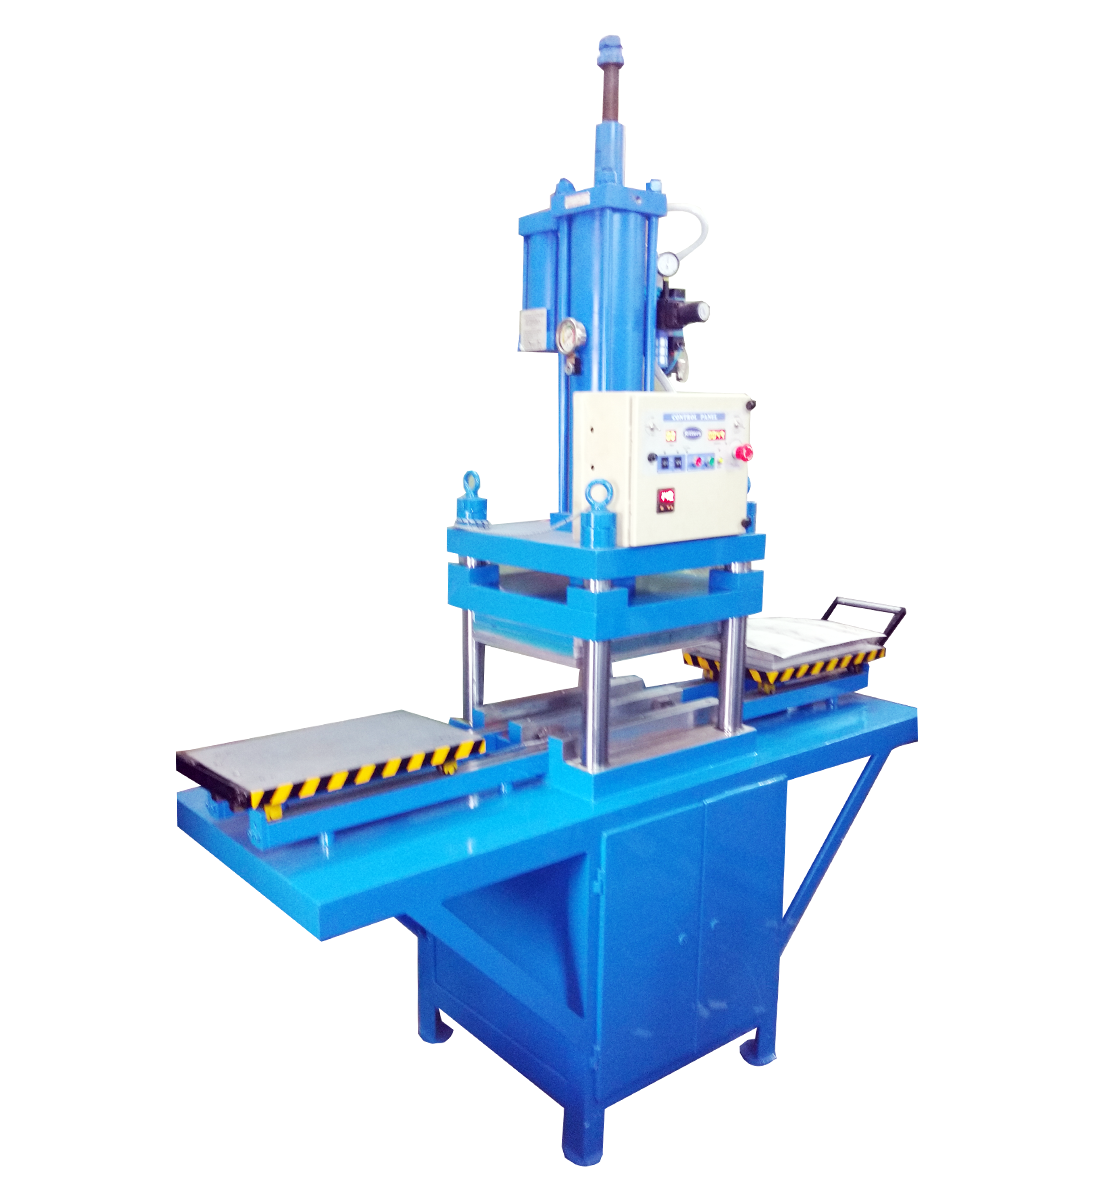 ritters Hydro-Pneumatic Press with Trolleys for Blister Cutting & Sealing